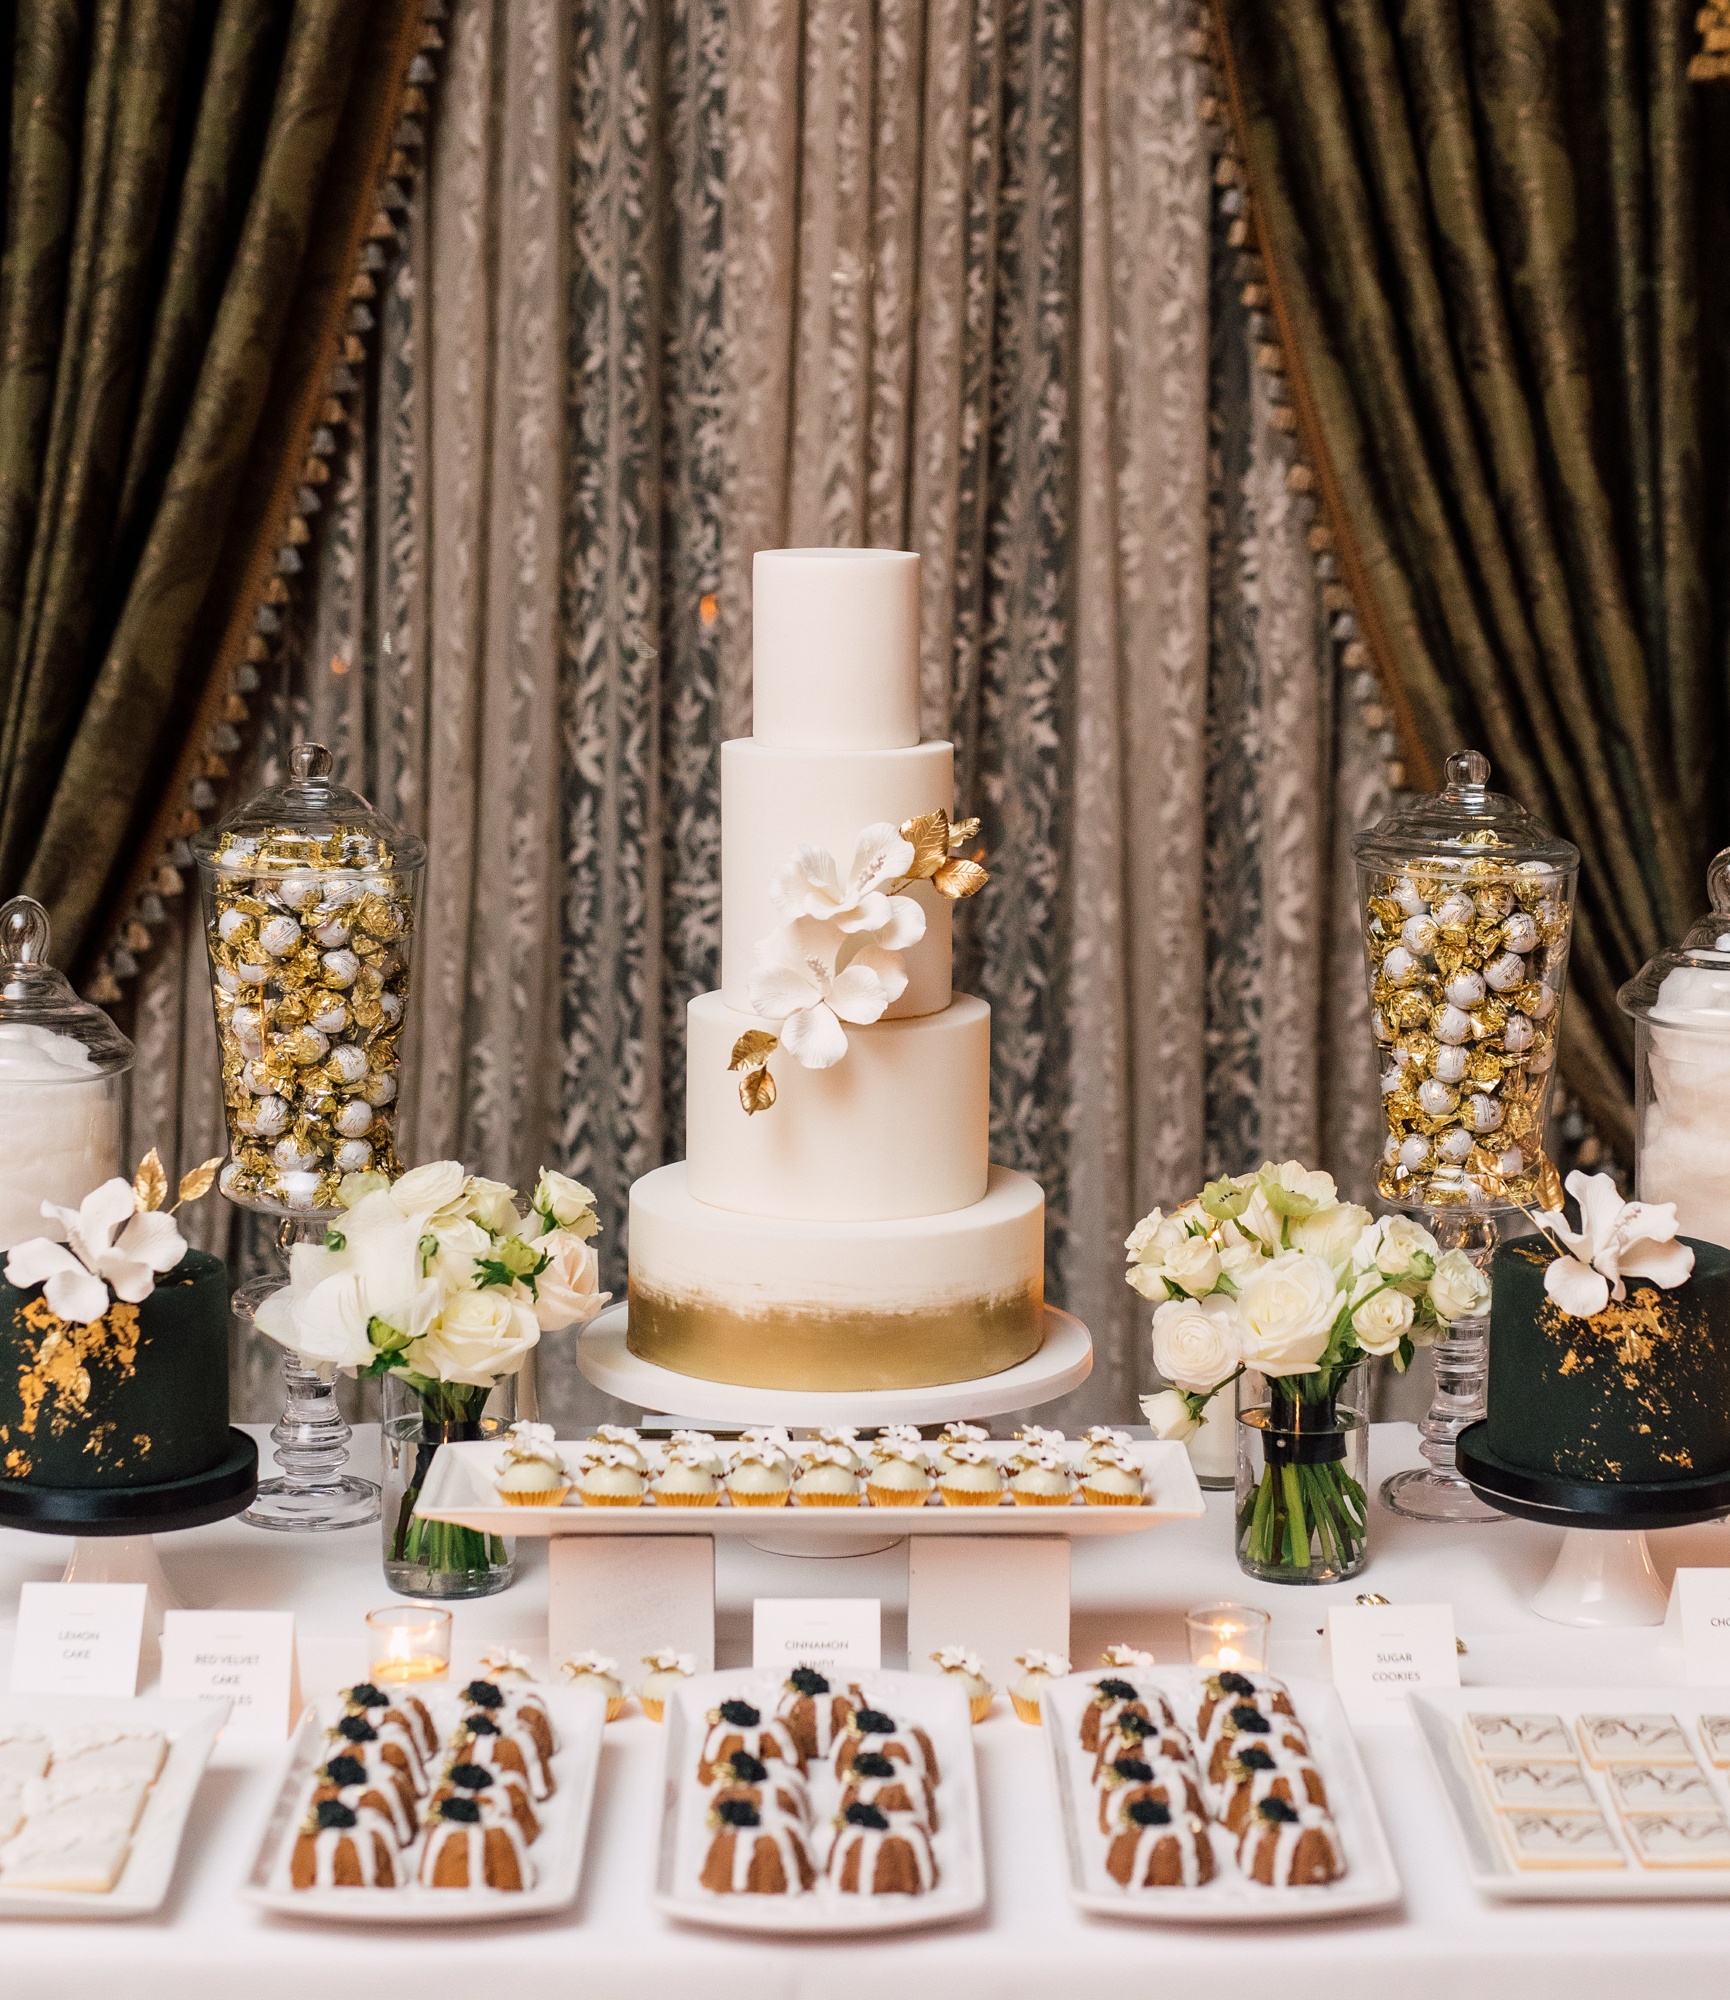 truffle cake and pastry wedding dessert table